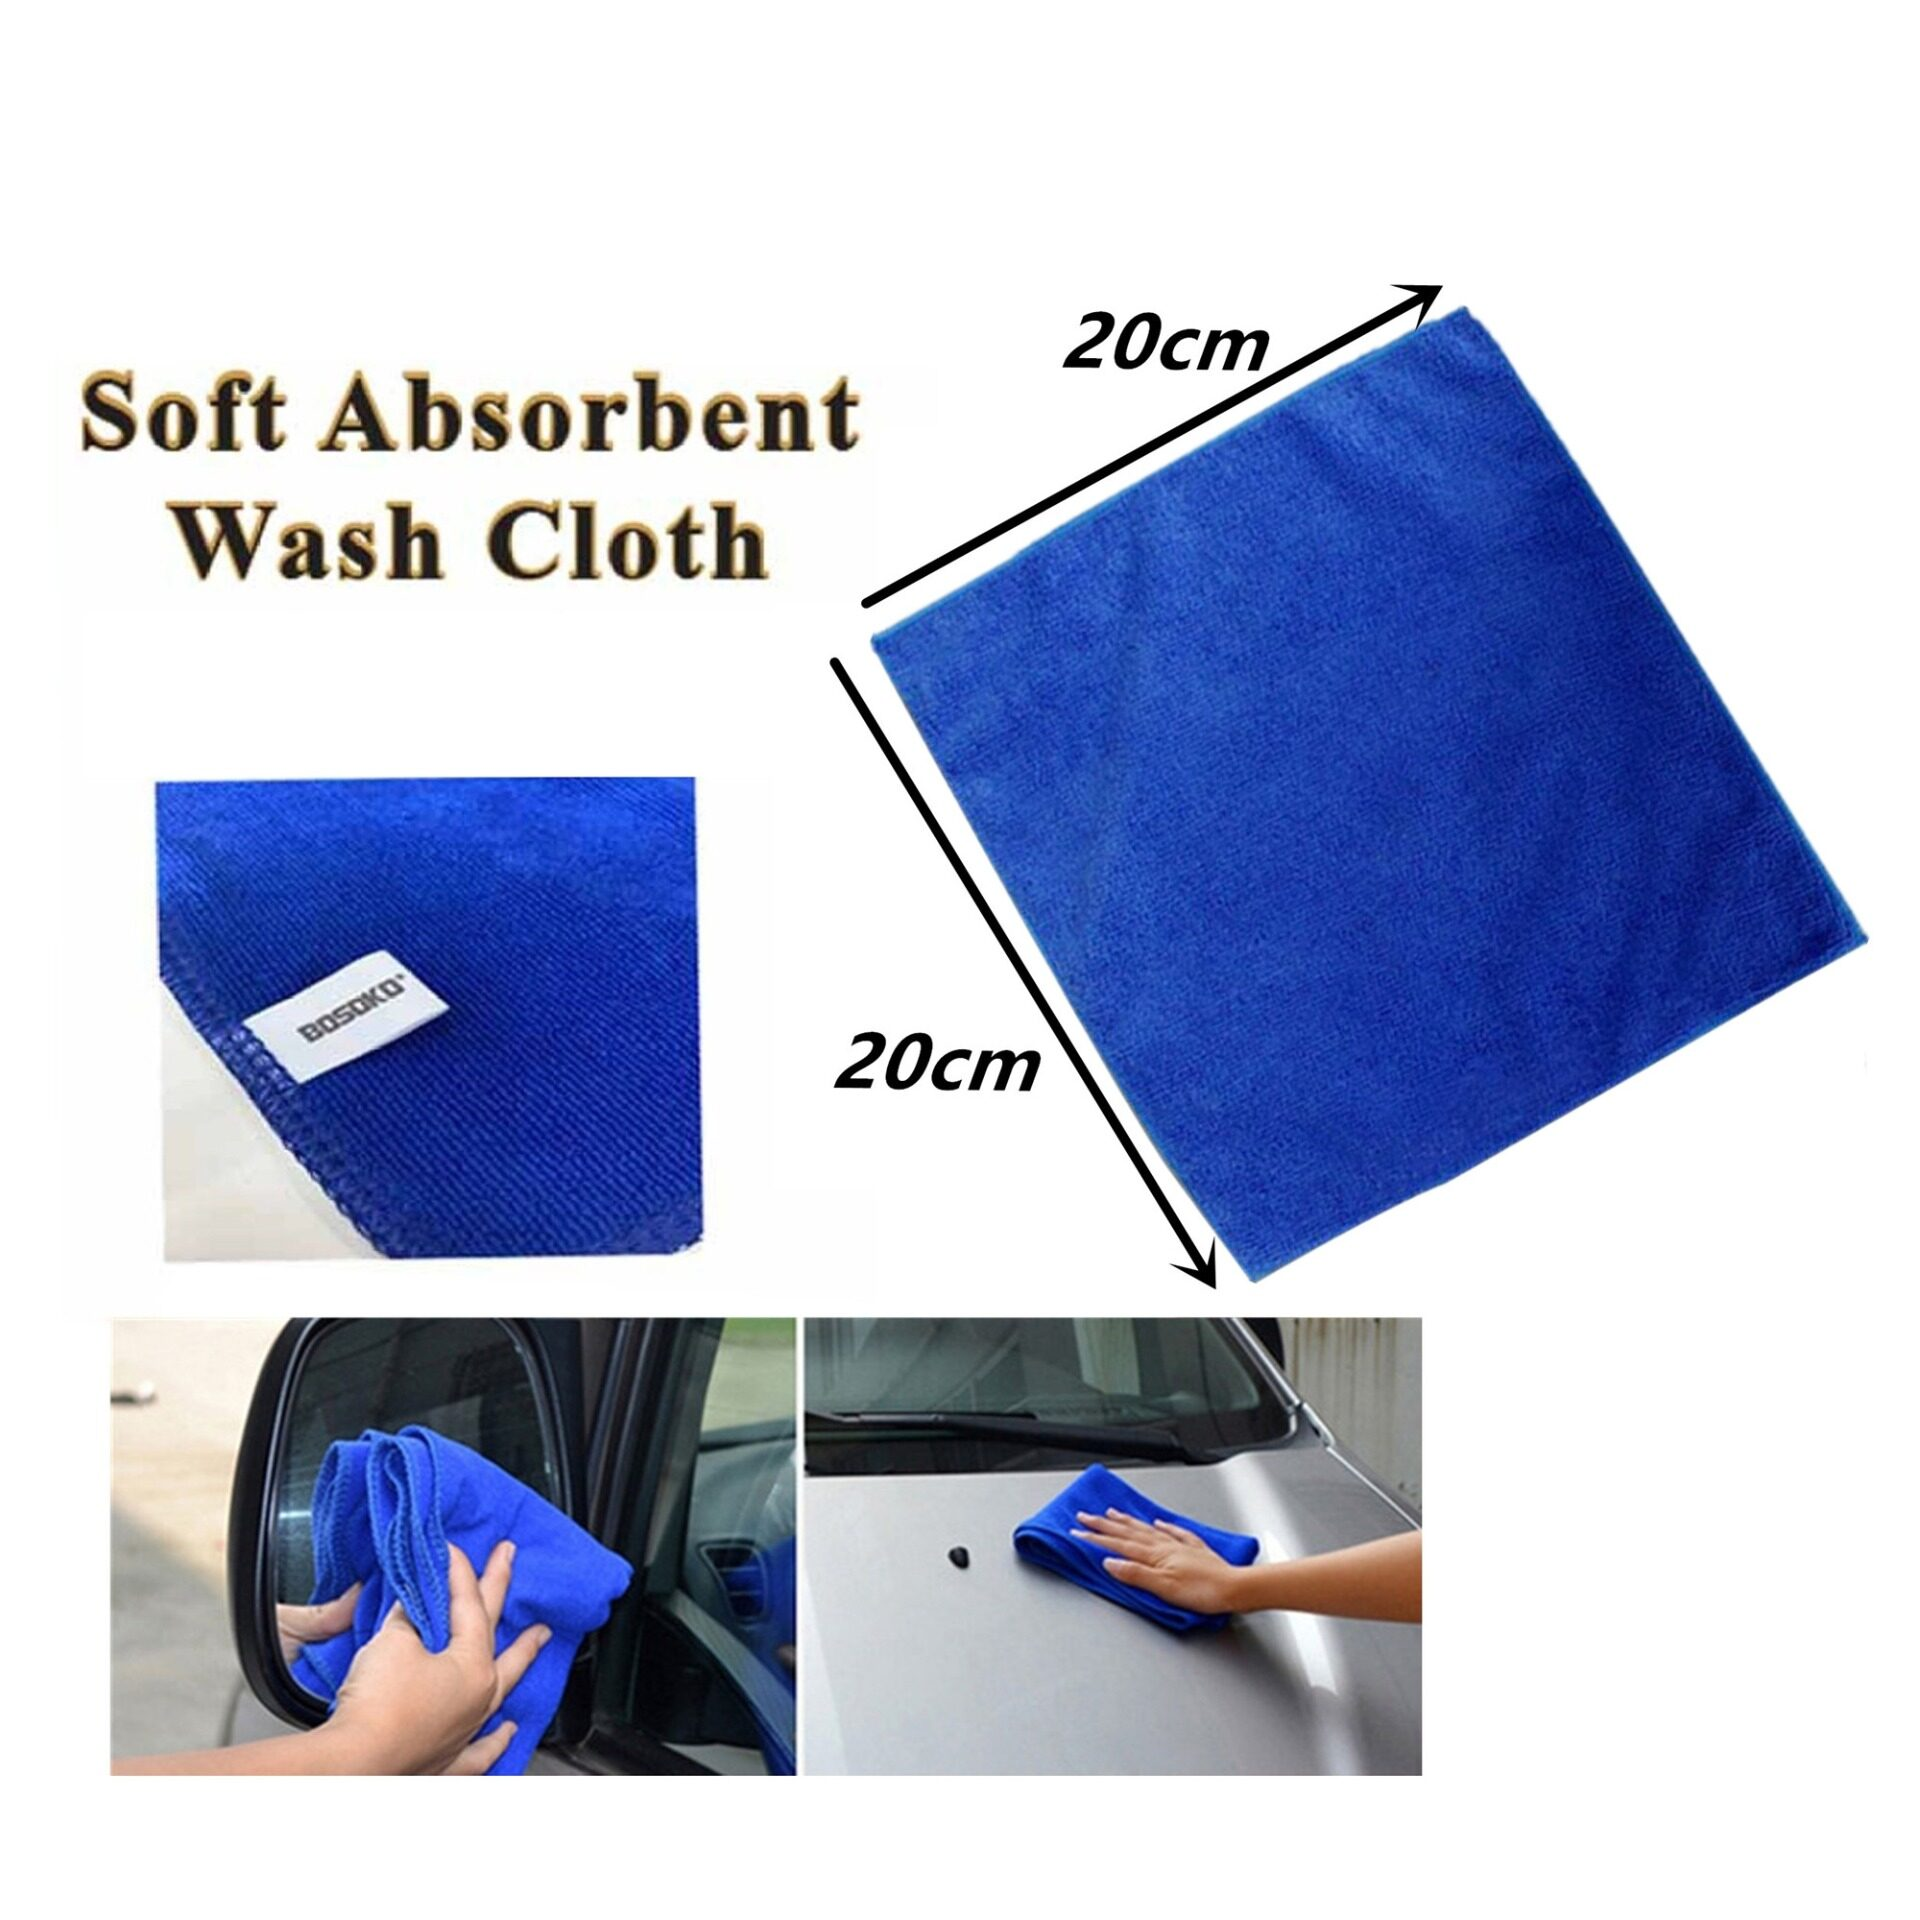 (BUY 10 FREE SHIPPING) 1 x BOSOKO Soft Absorbent Wash Cloth Car Auto Care Microfiber Cleaning Towels (Blue) 20cm x 20cm